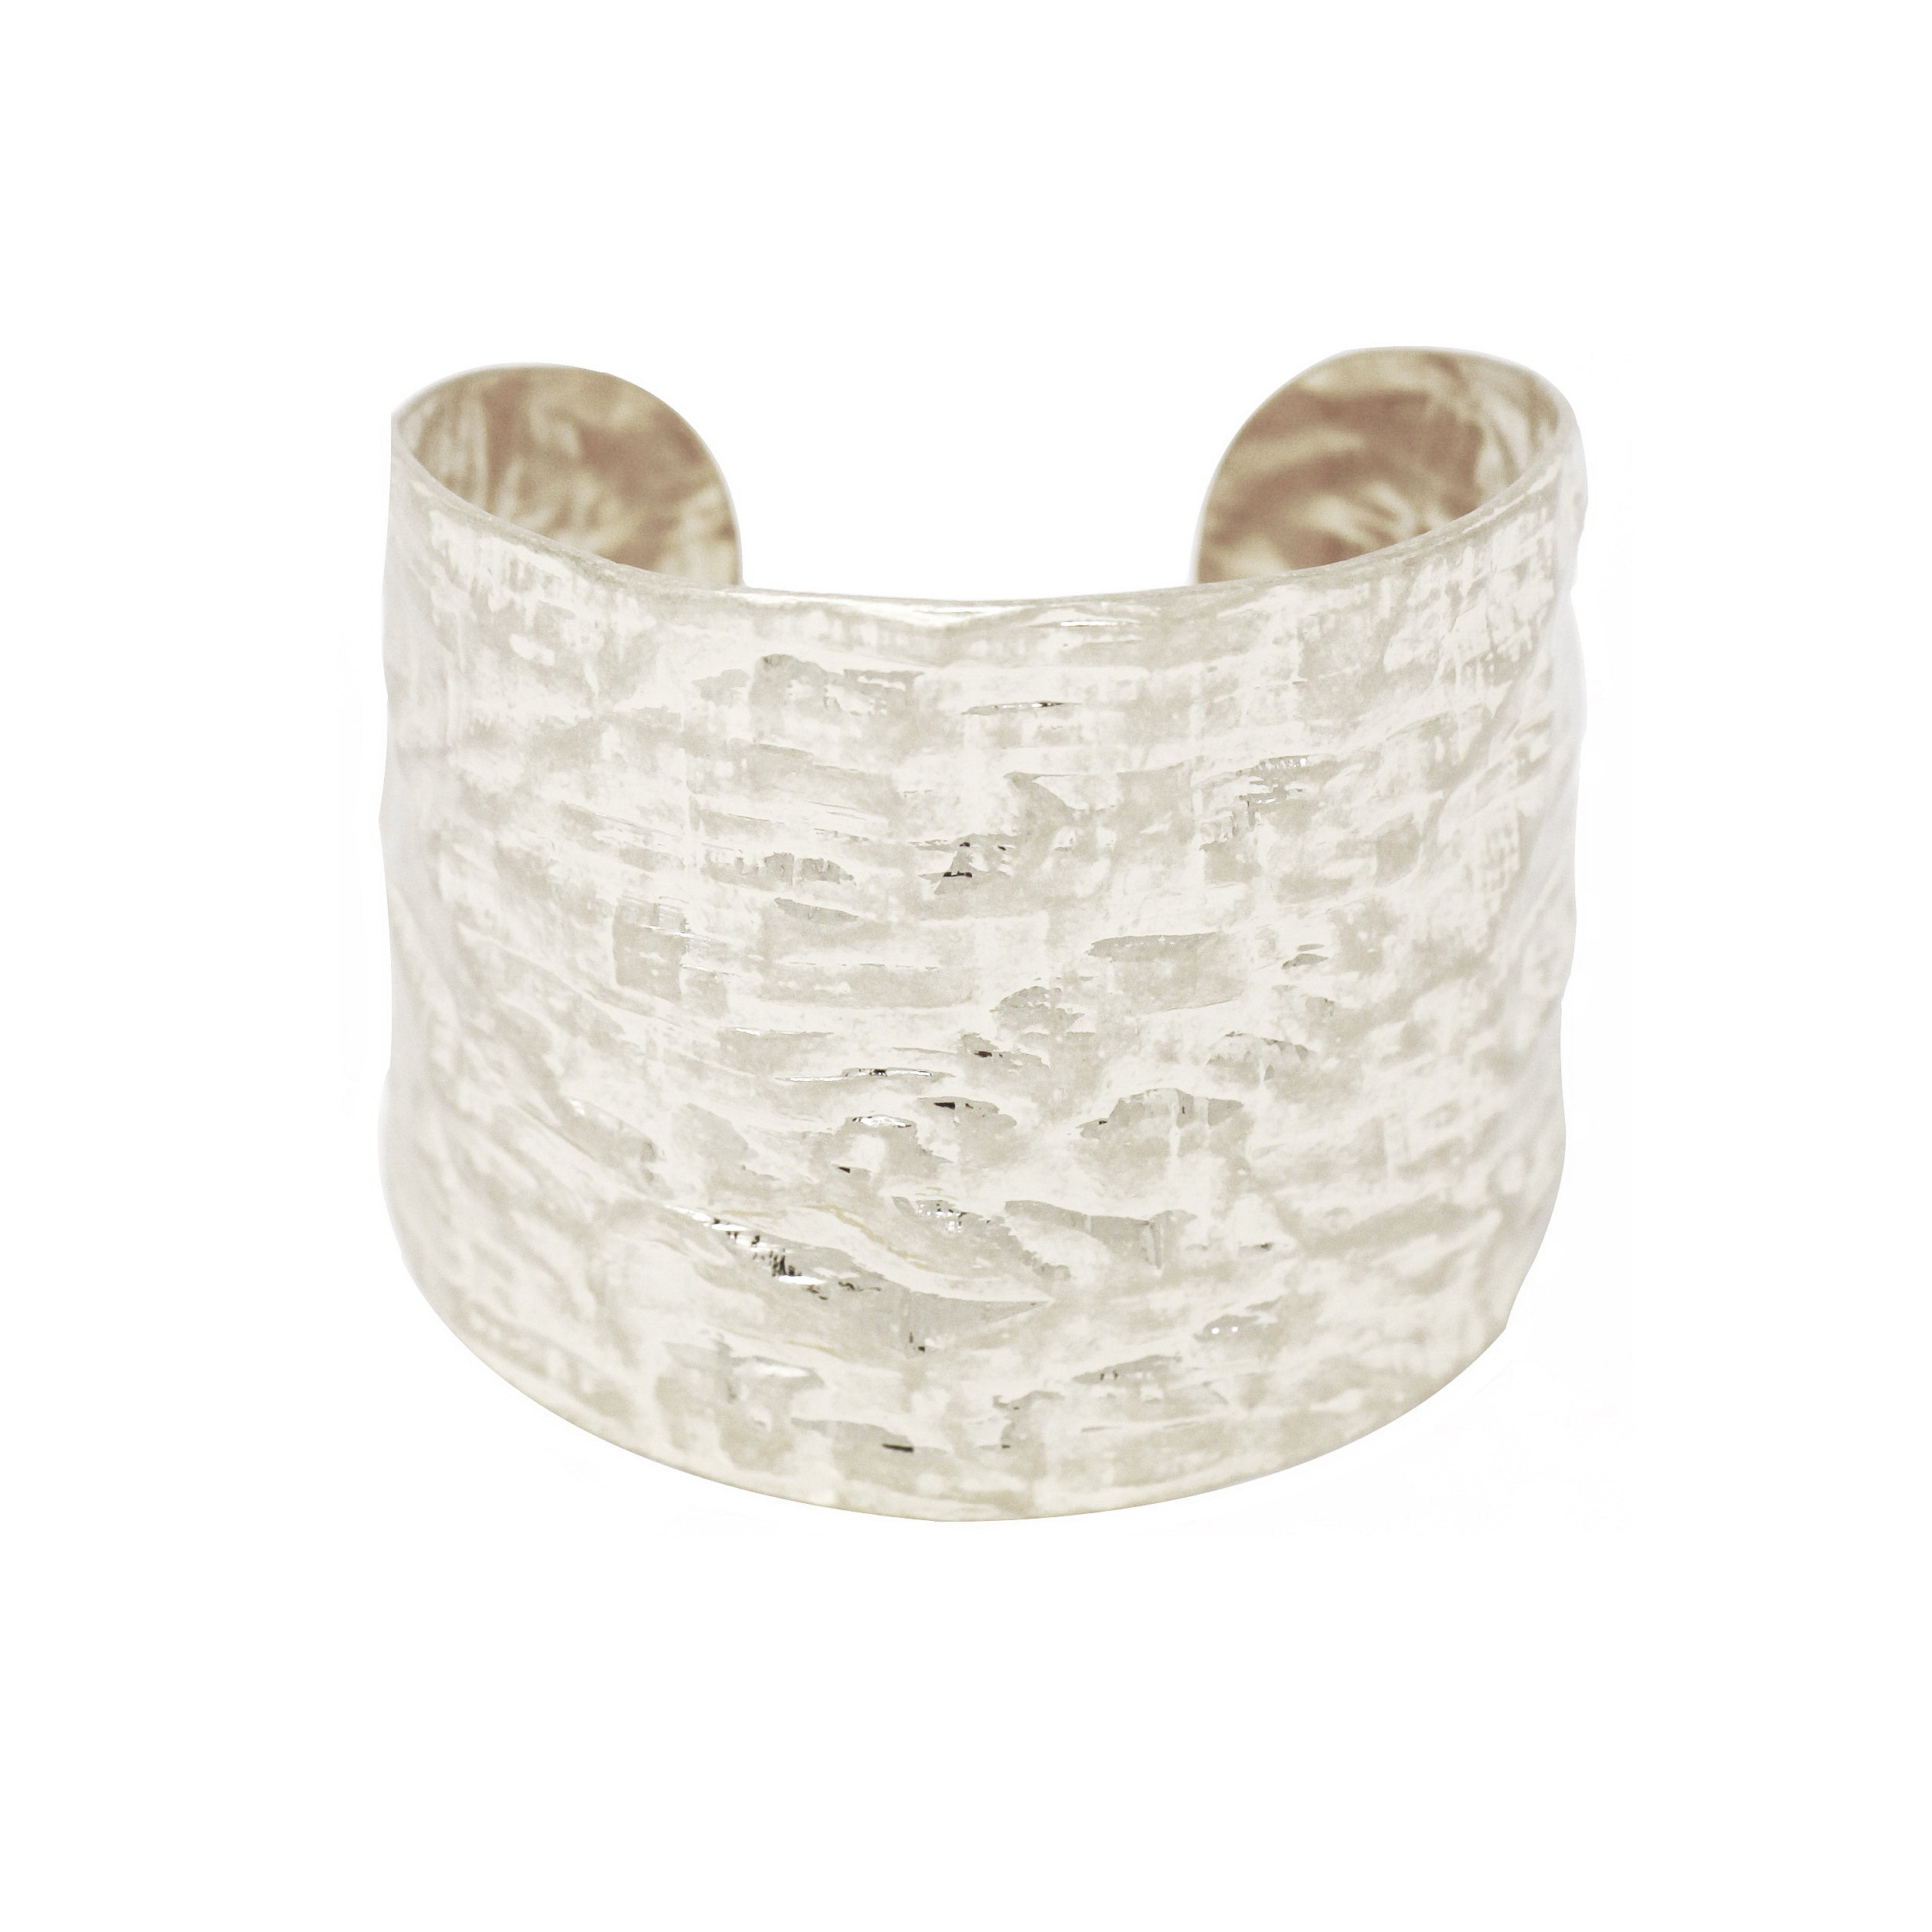 Urban Hammered Worn Metal Cuff Bracelet